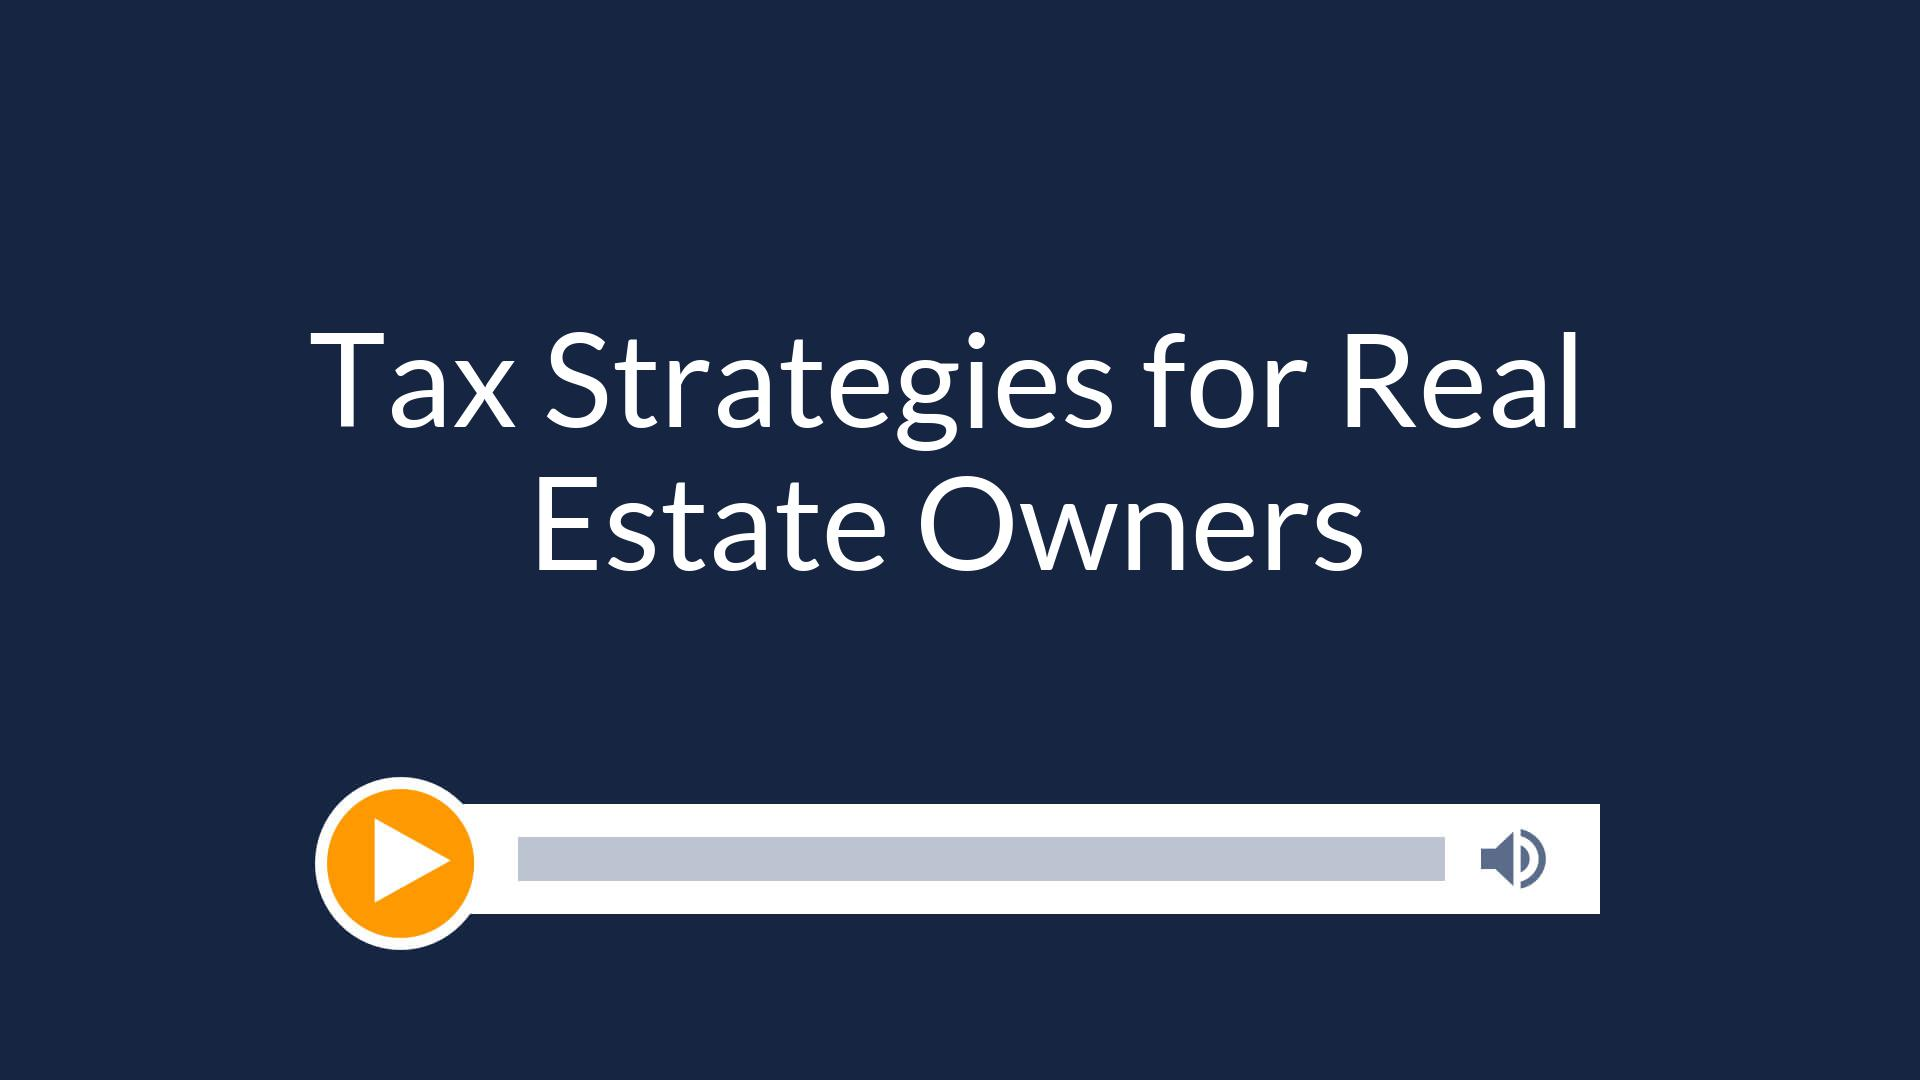 Tax Strategies for Real Estate Owners